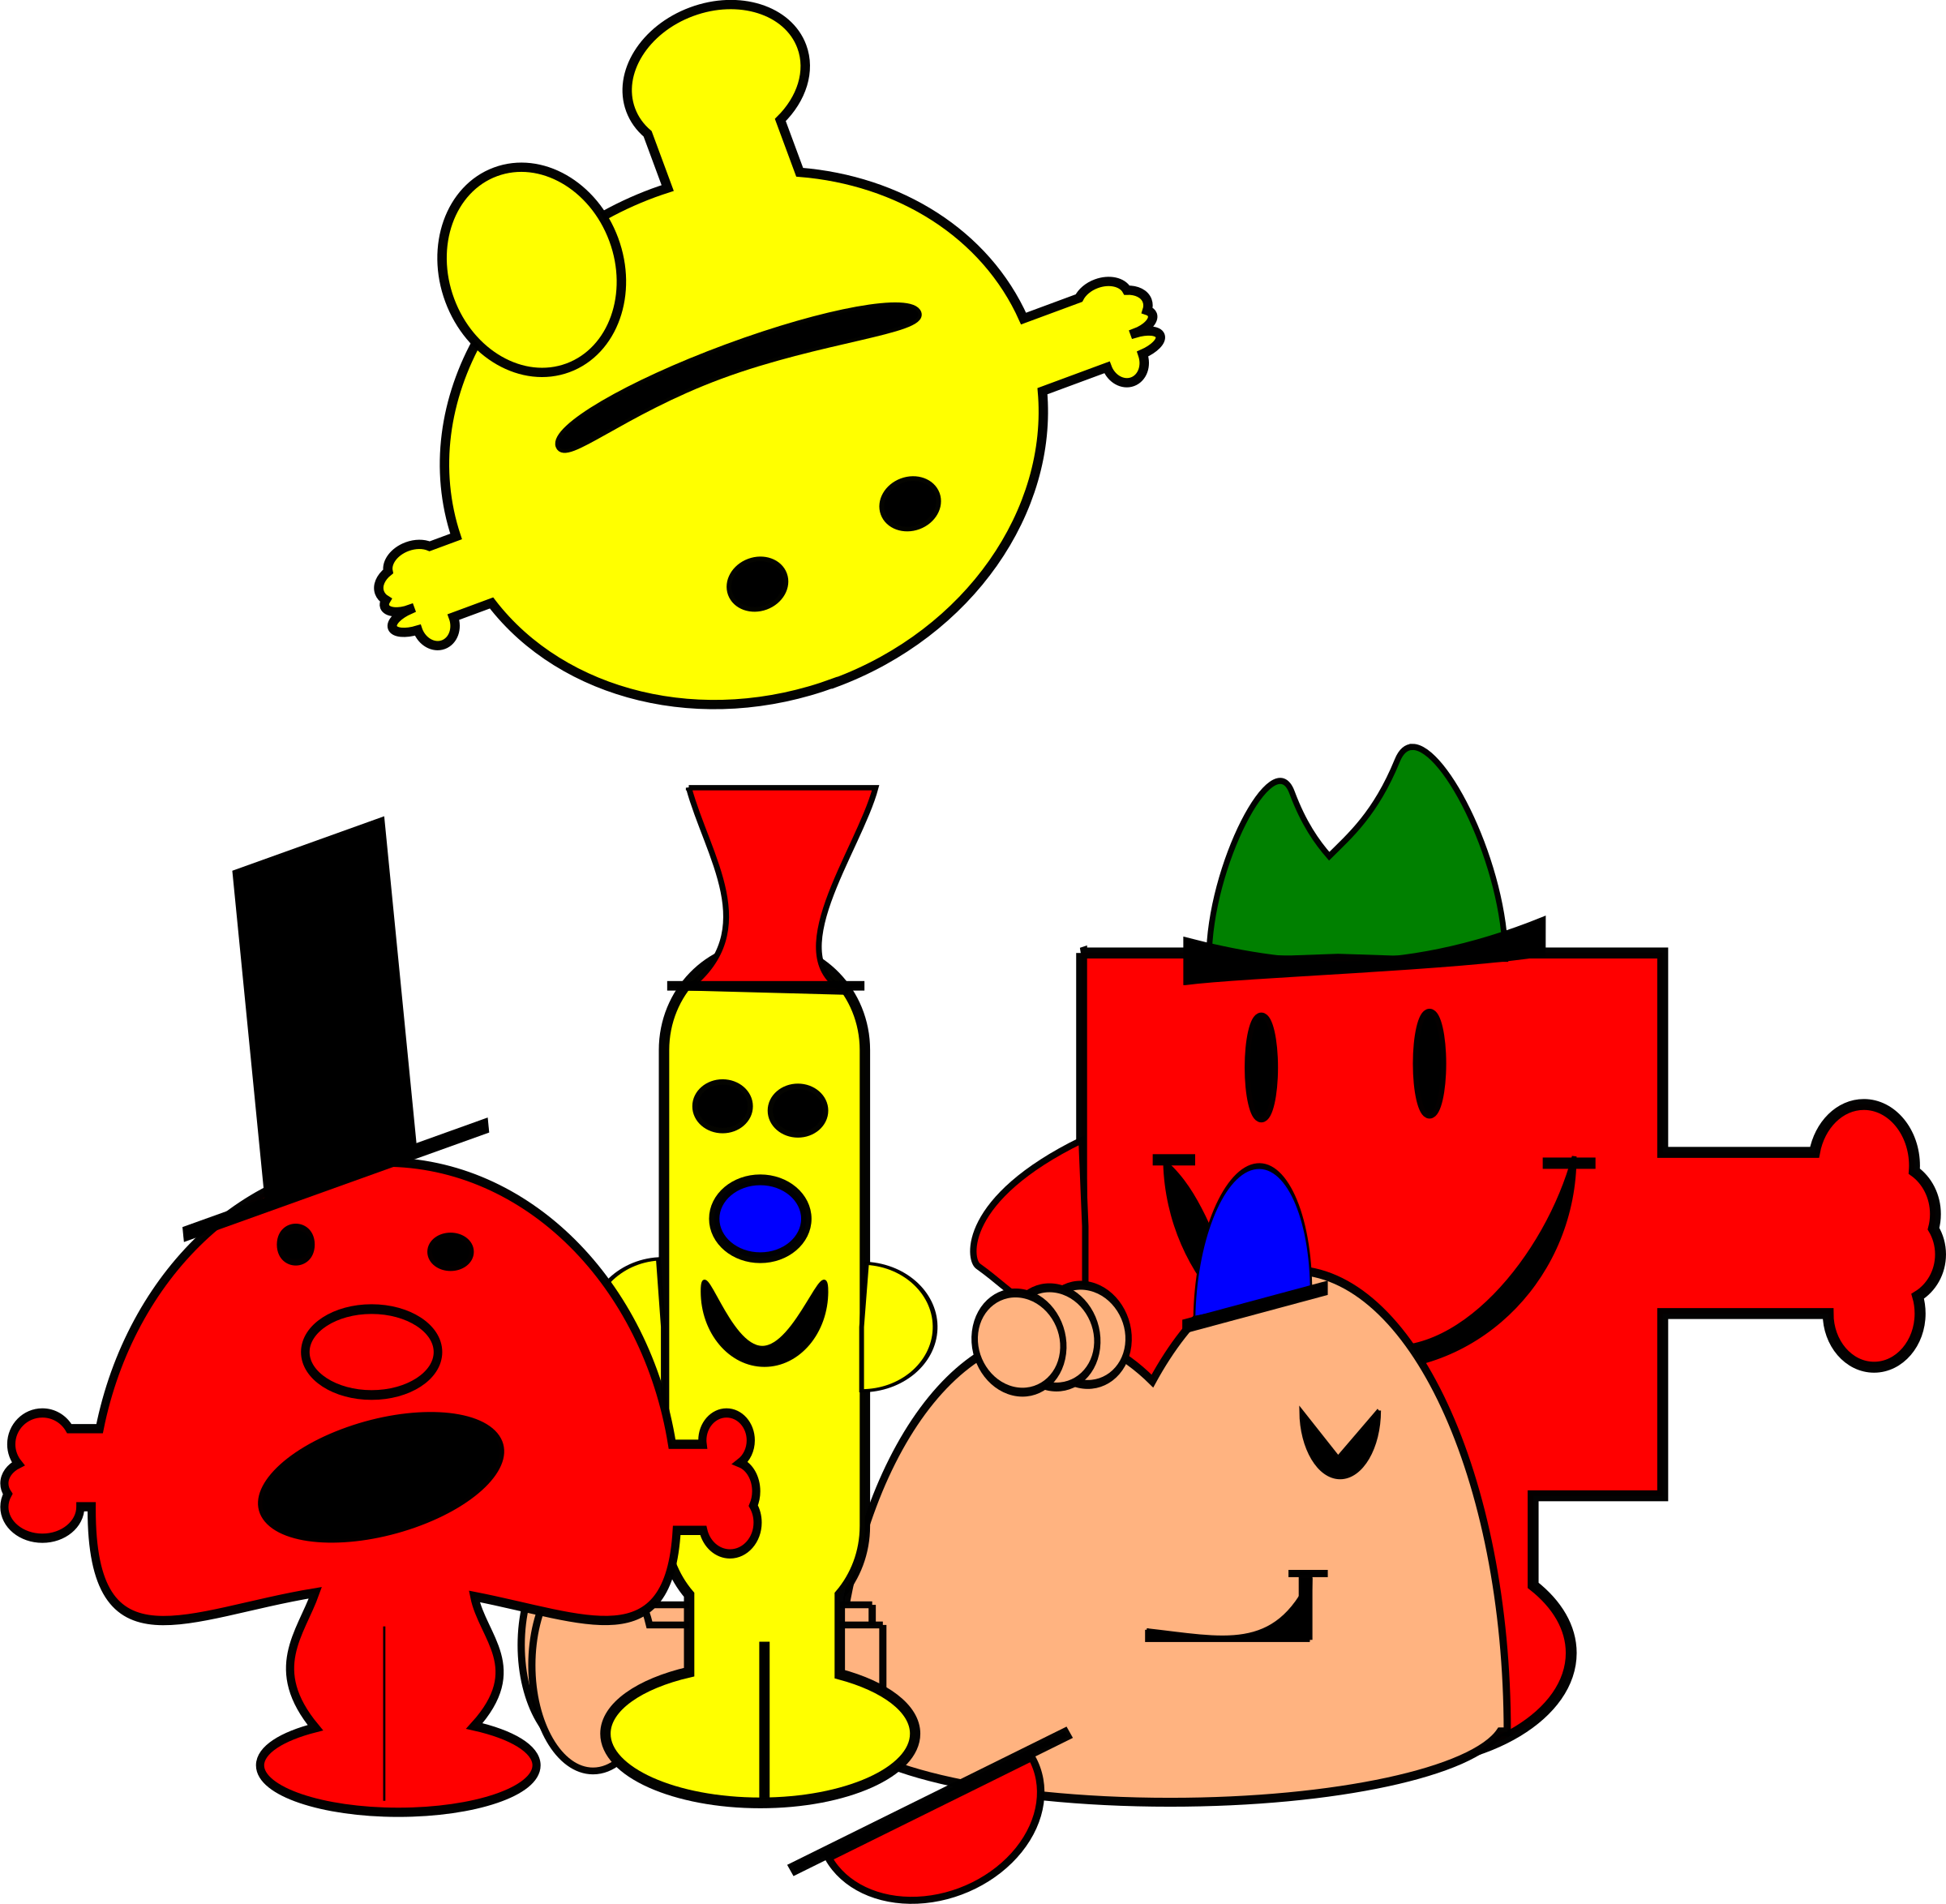 mr men by PeterBrough